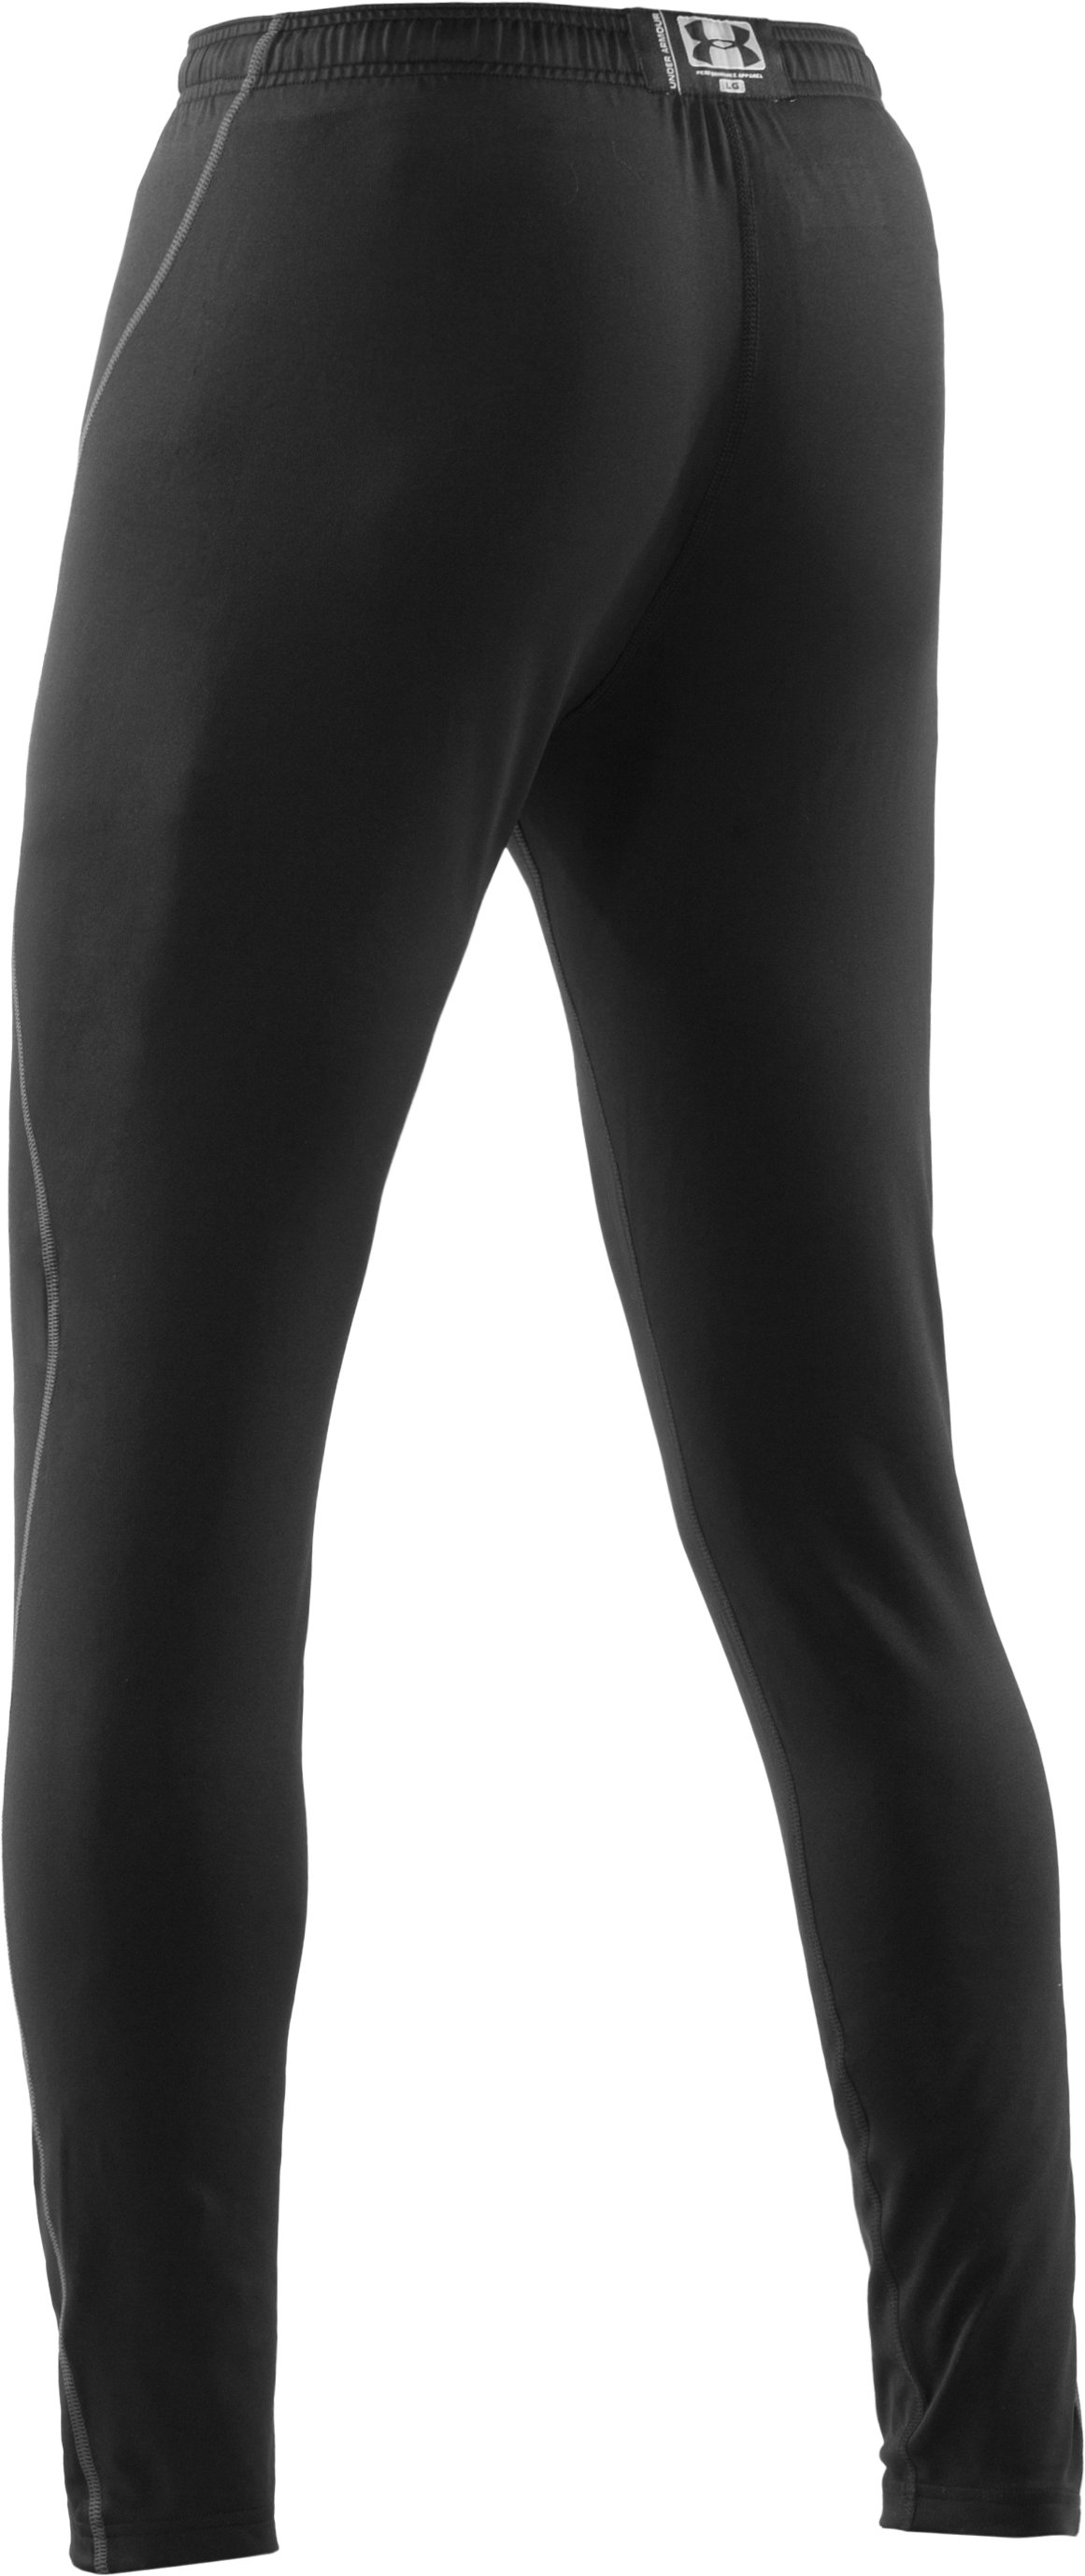 Men's ColdGear® EVO Fitted Leggings, Black